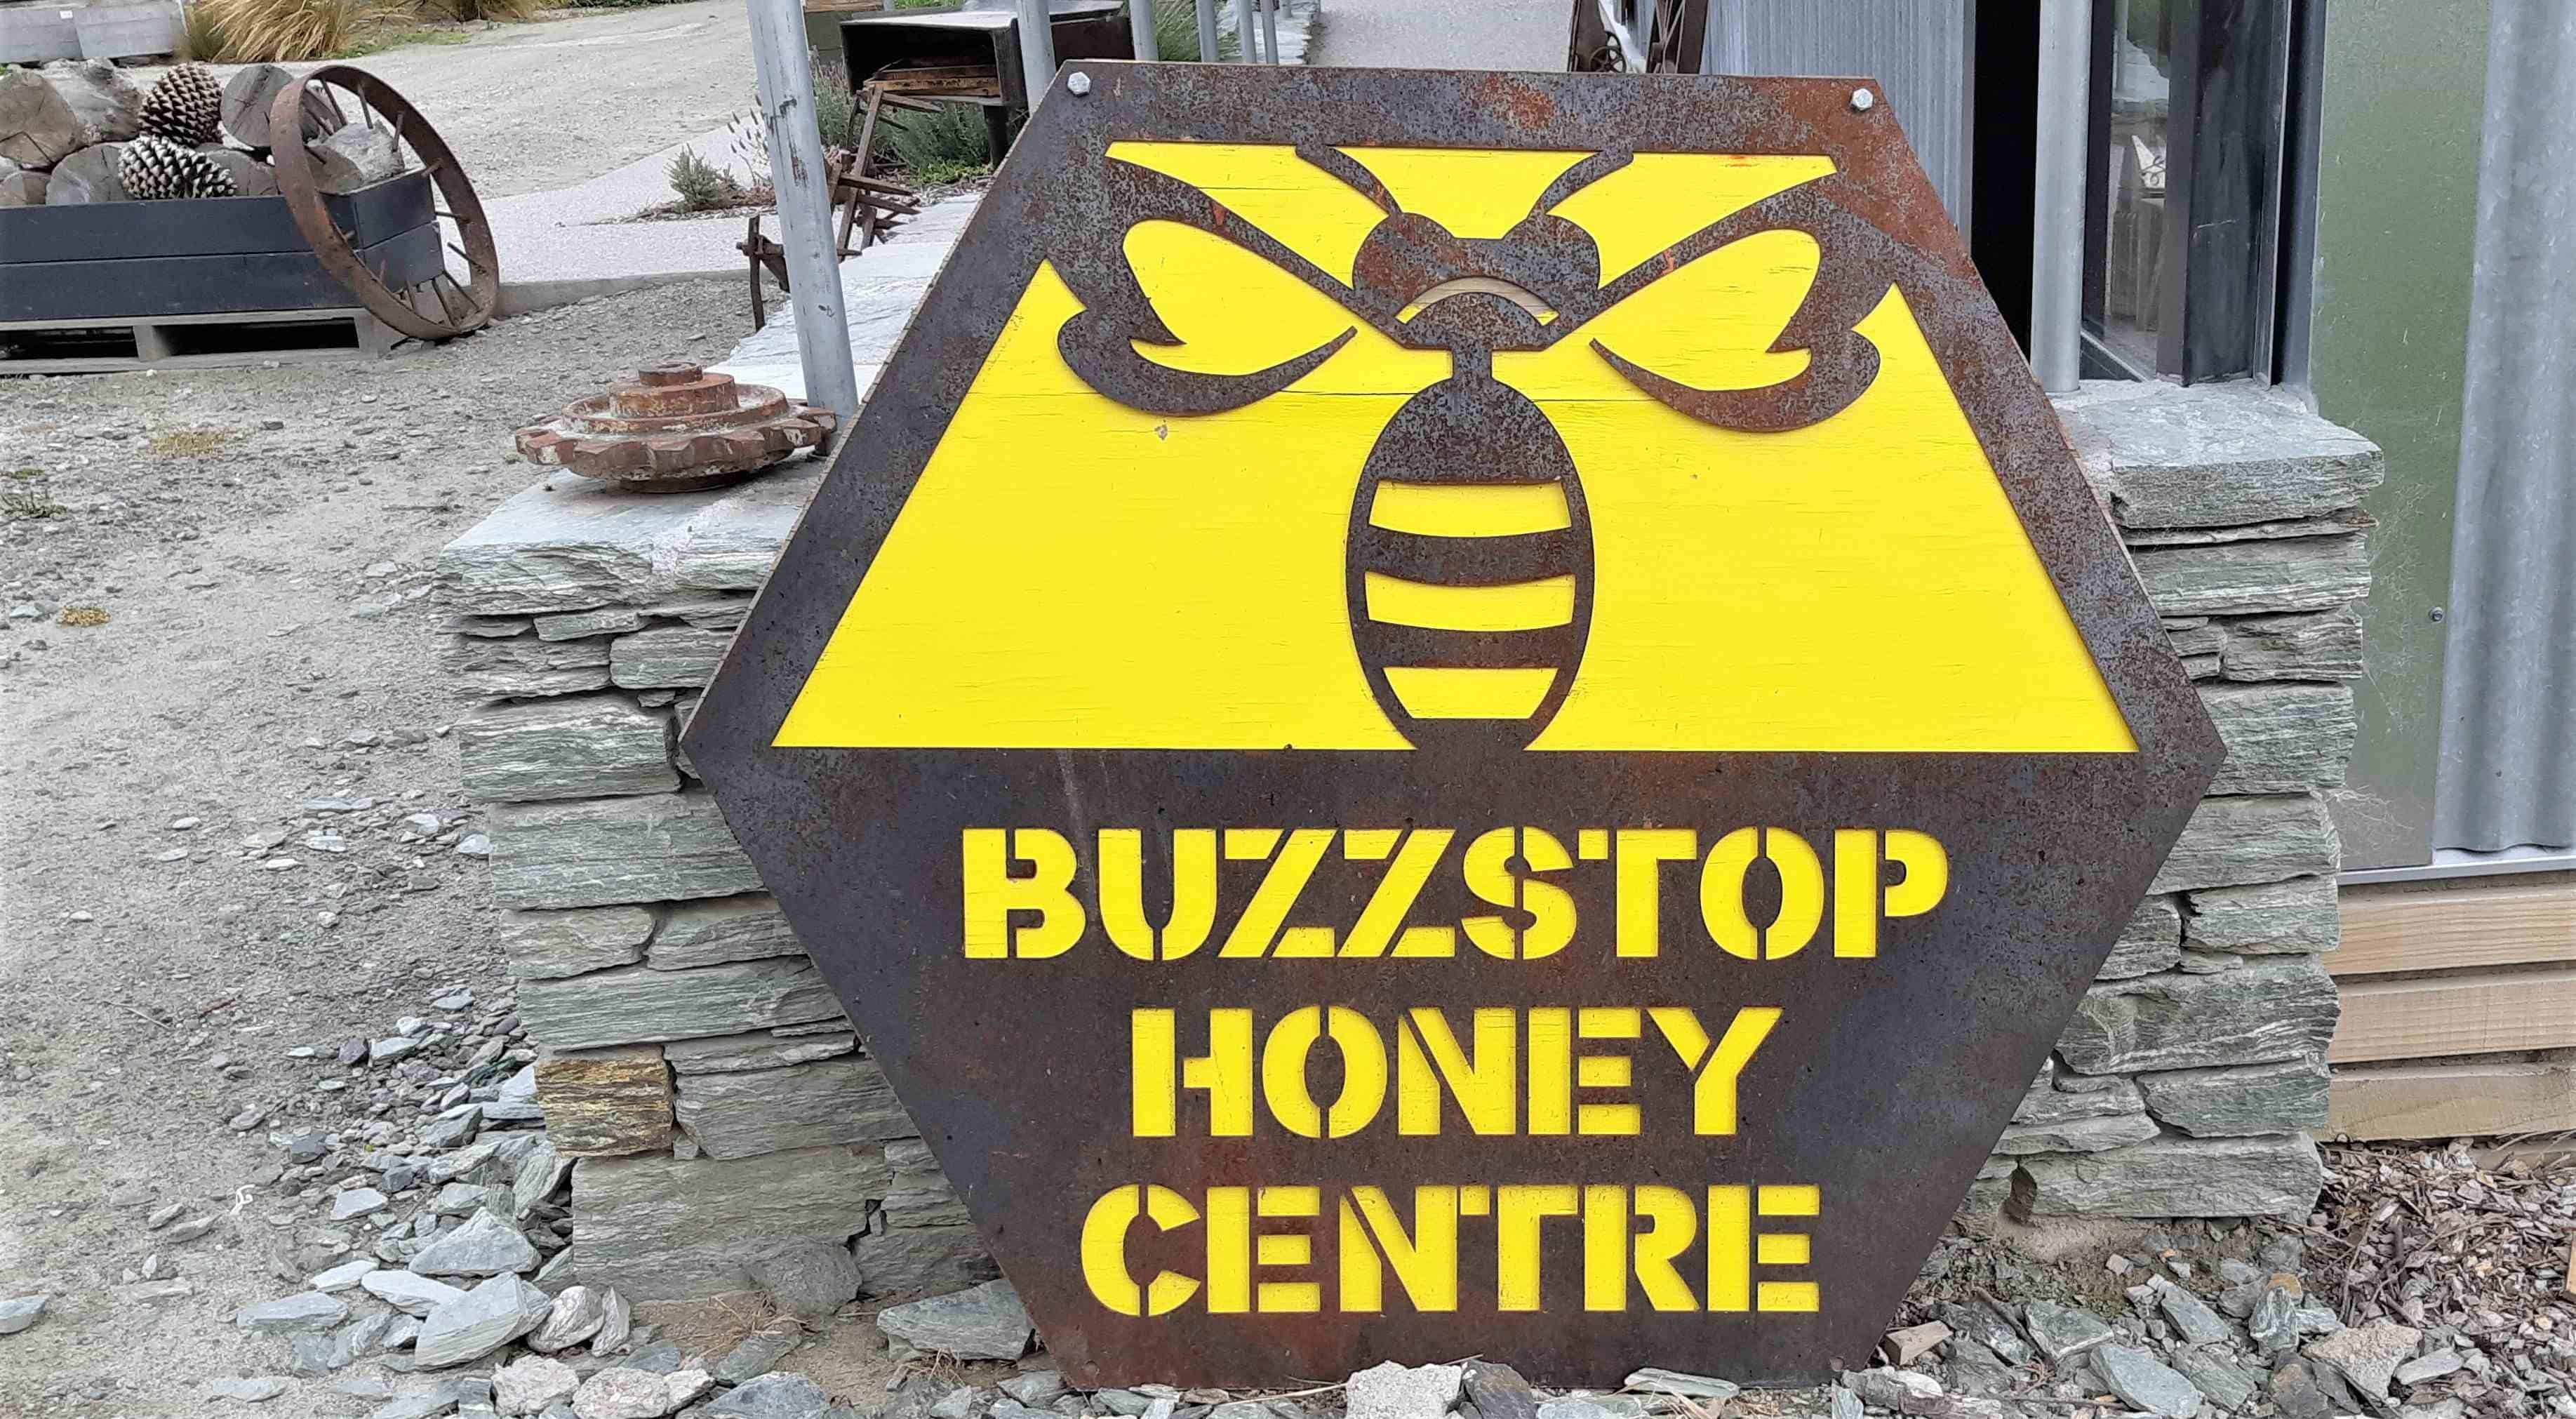 Buzzstop Honey Centre Sign